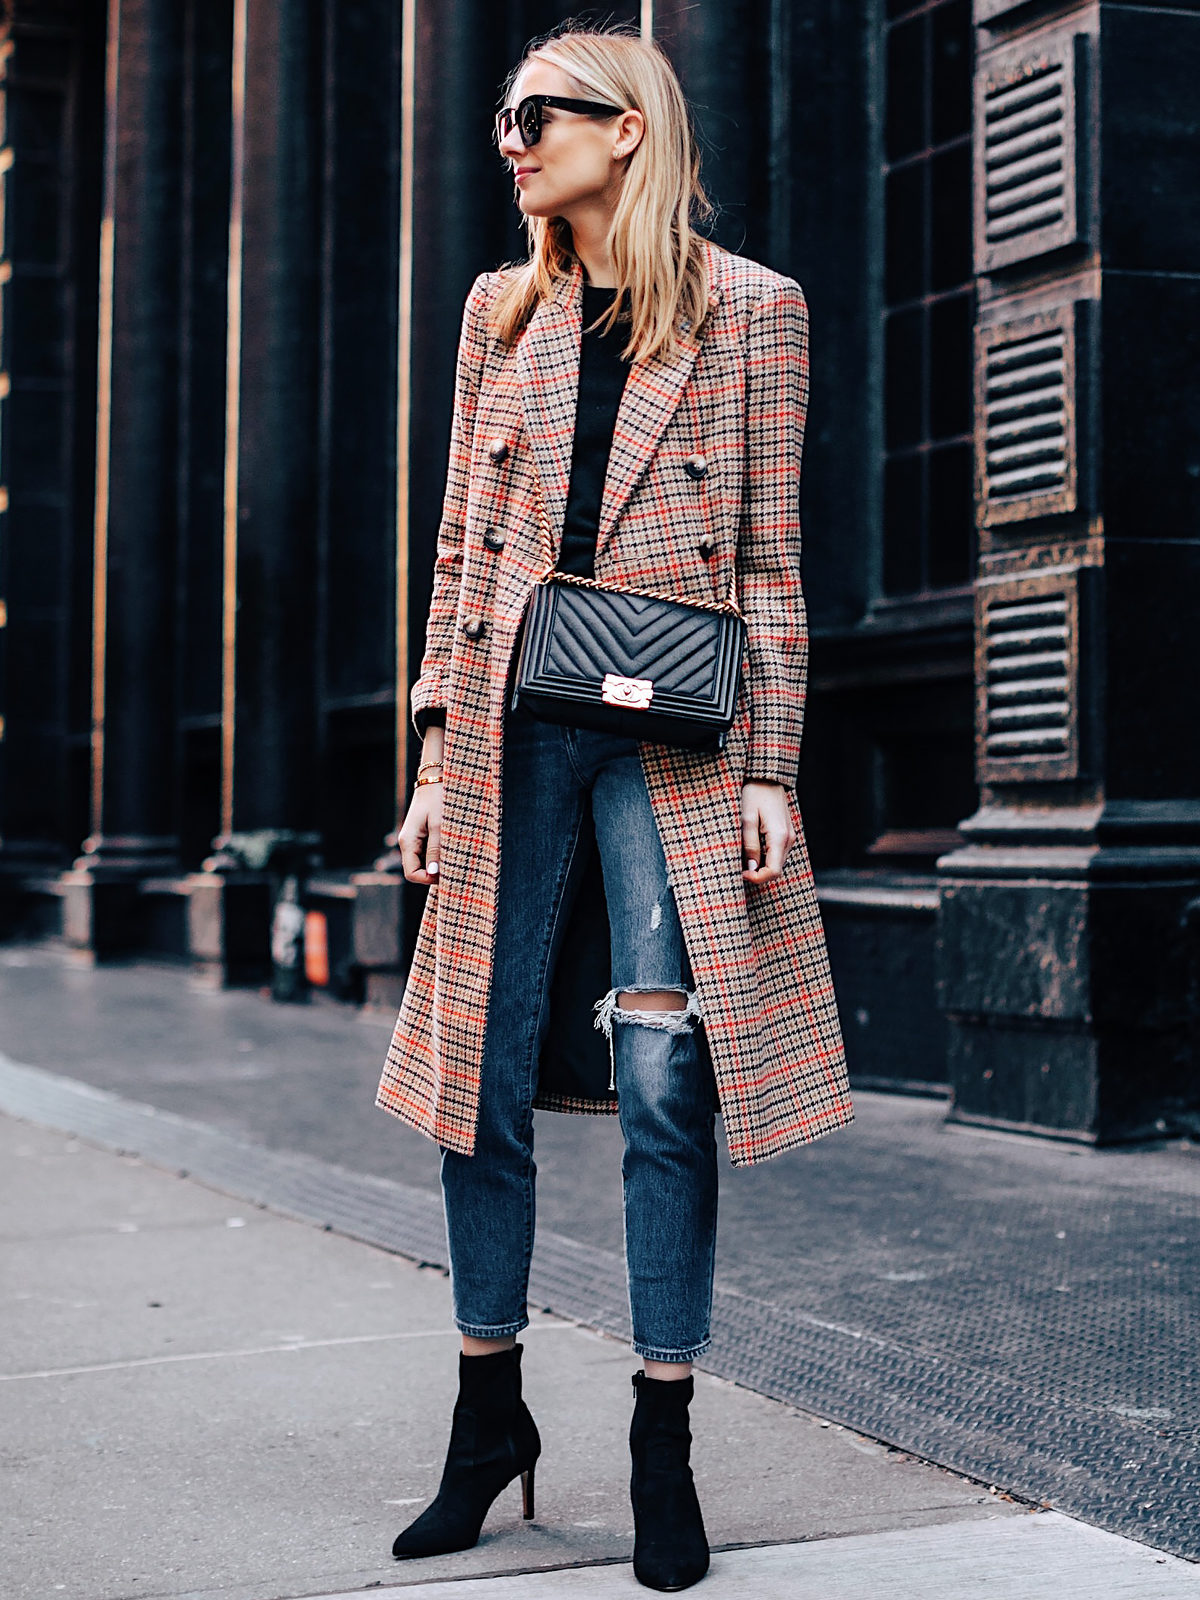 Blonde Woman Wearing Topshop Plaid Long Coat Black Sweater Levis Wedgie Fit Ripped Jeans Black Booties Chanel Boy Bag Black Fashion Jackson Fashion Blogger NYFW Street Style